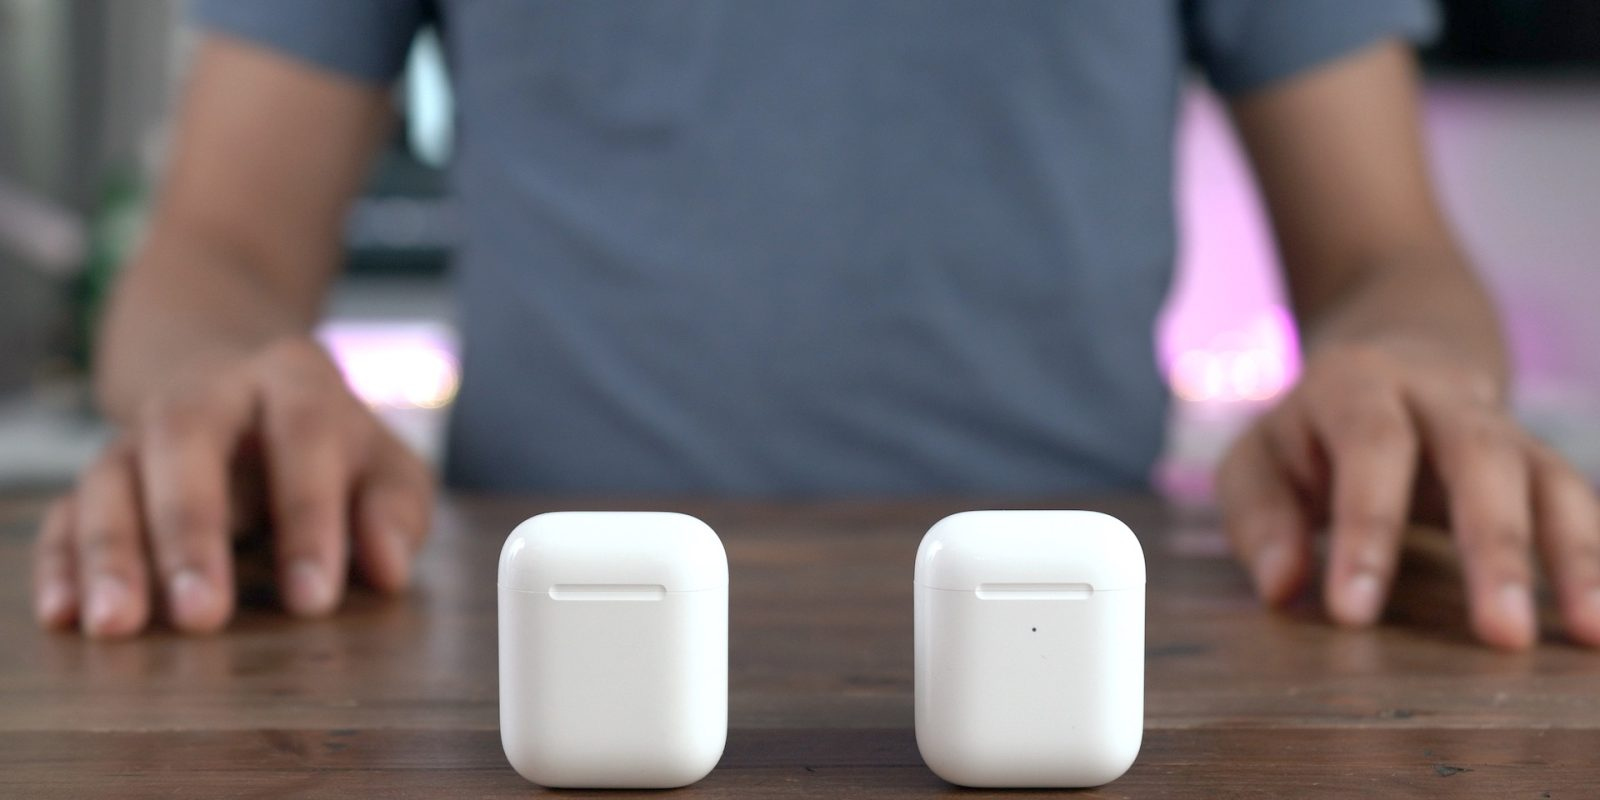 a27a2b65439 Techmeme: Kuo: Apple will launch two new AirPods models in the Q4 2019 - Q1  2020 timeframe, one an iterative update, the other with a new design and  higher ...